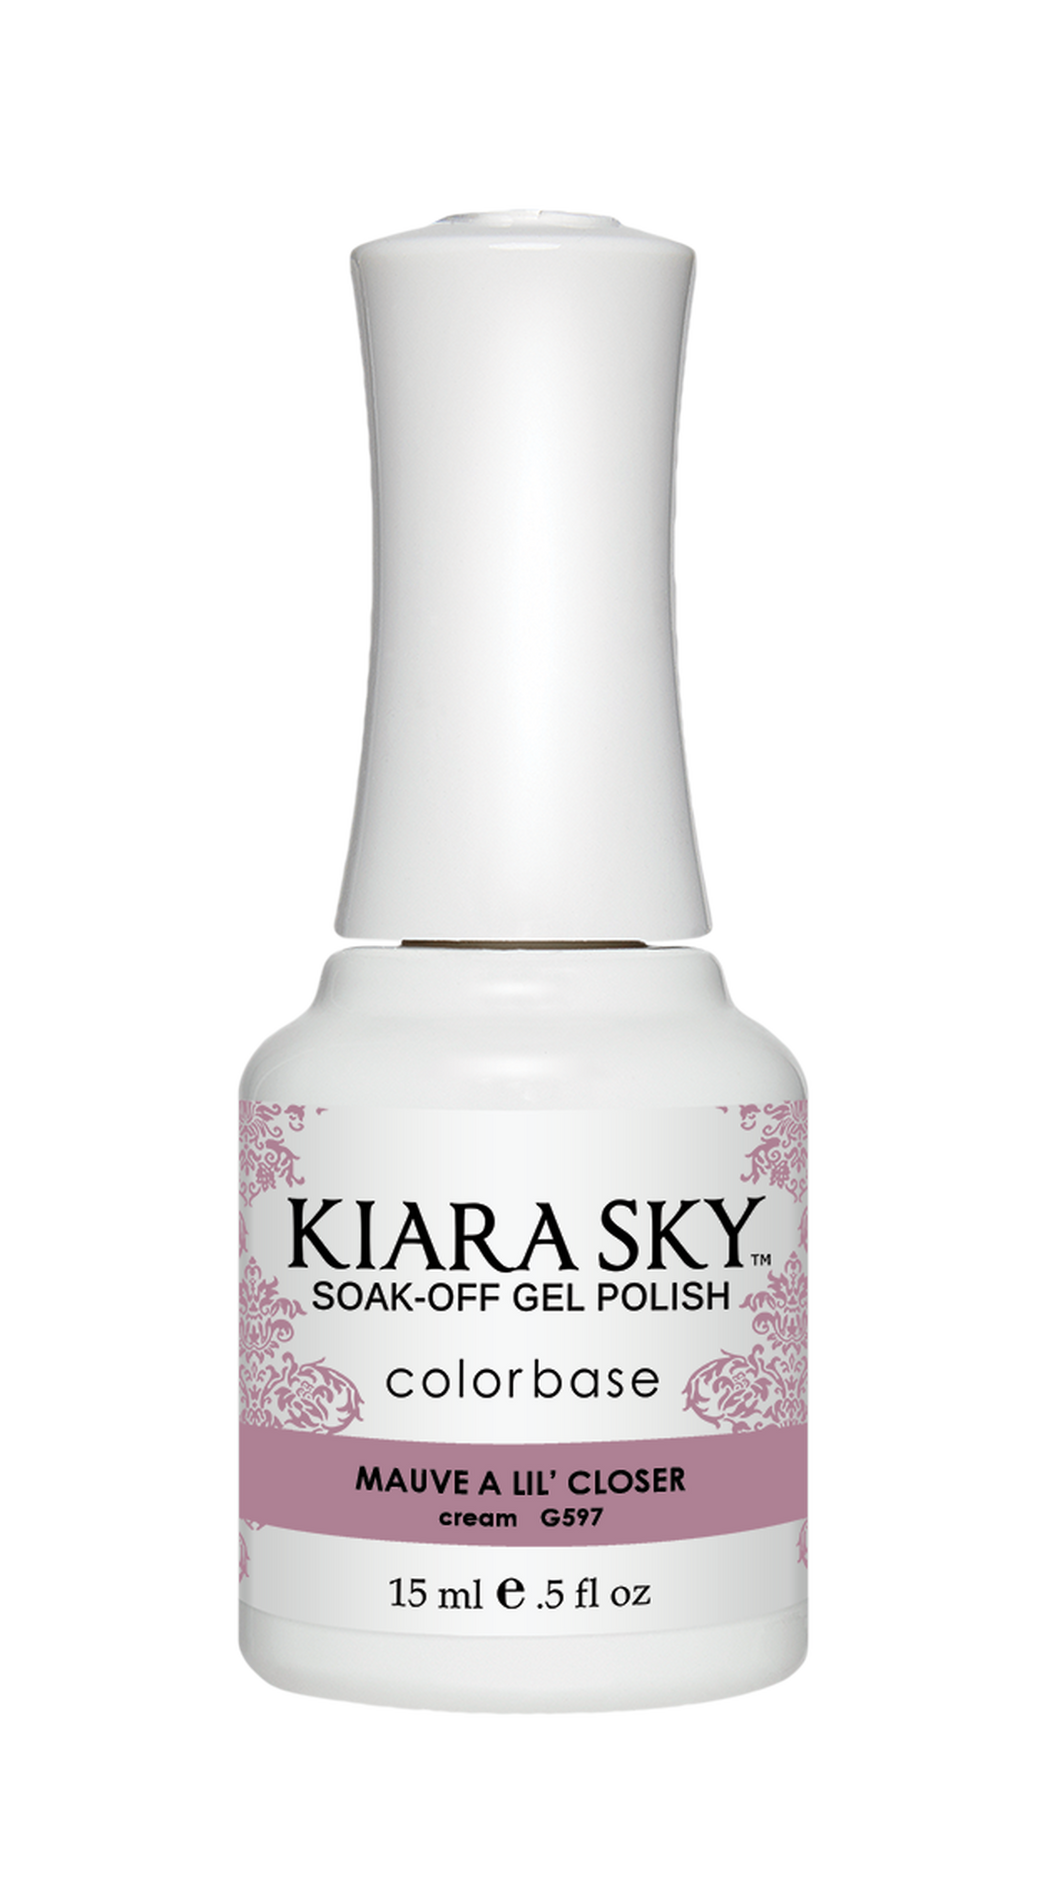 Kiara Sky Mauve A Lil' Closer G597